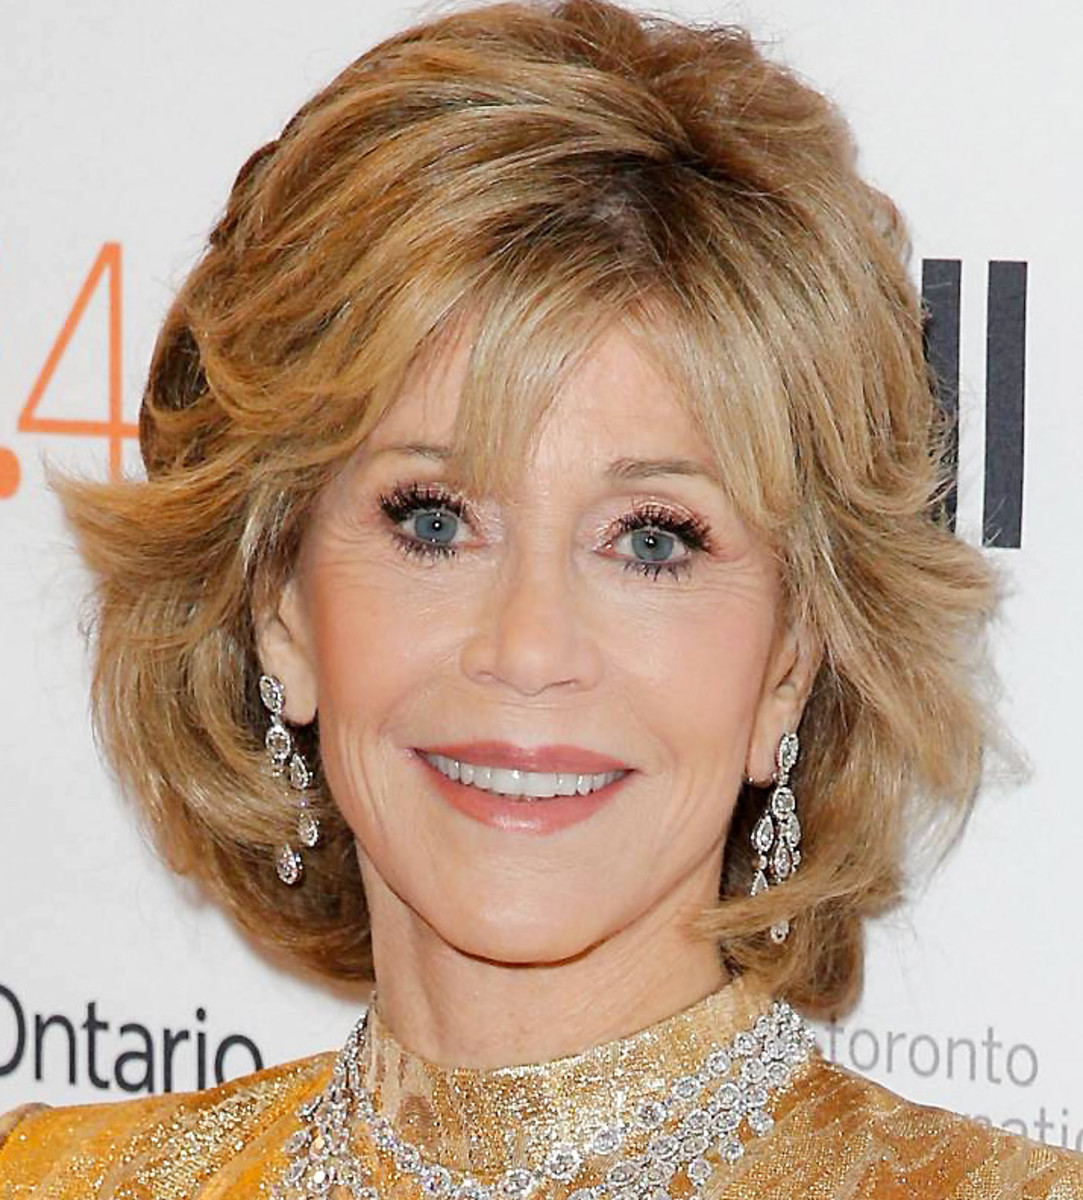 Jane Fonda glows in gold at the TIFF 2015 – look at that radiant complexion!